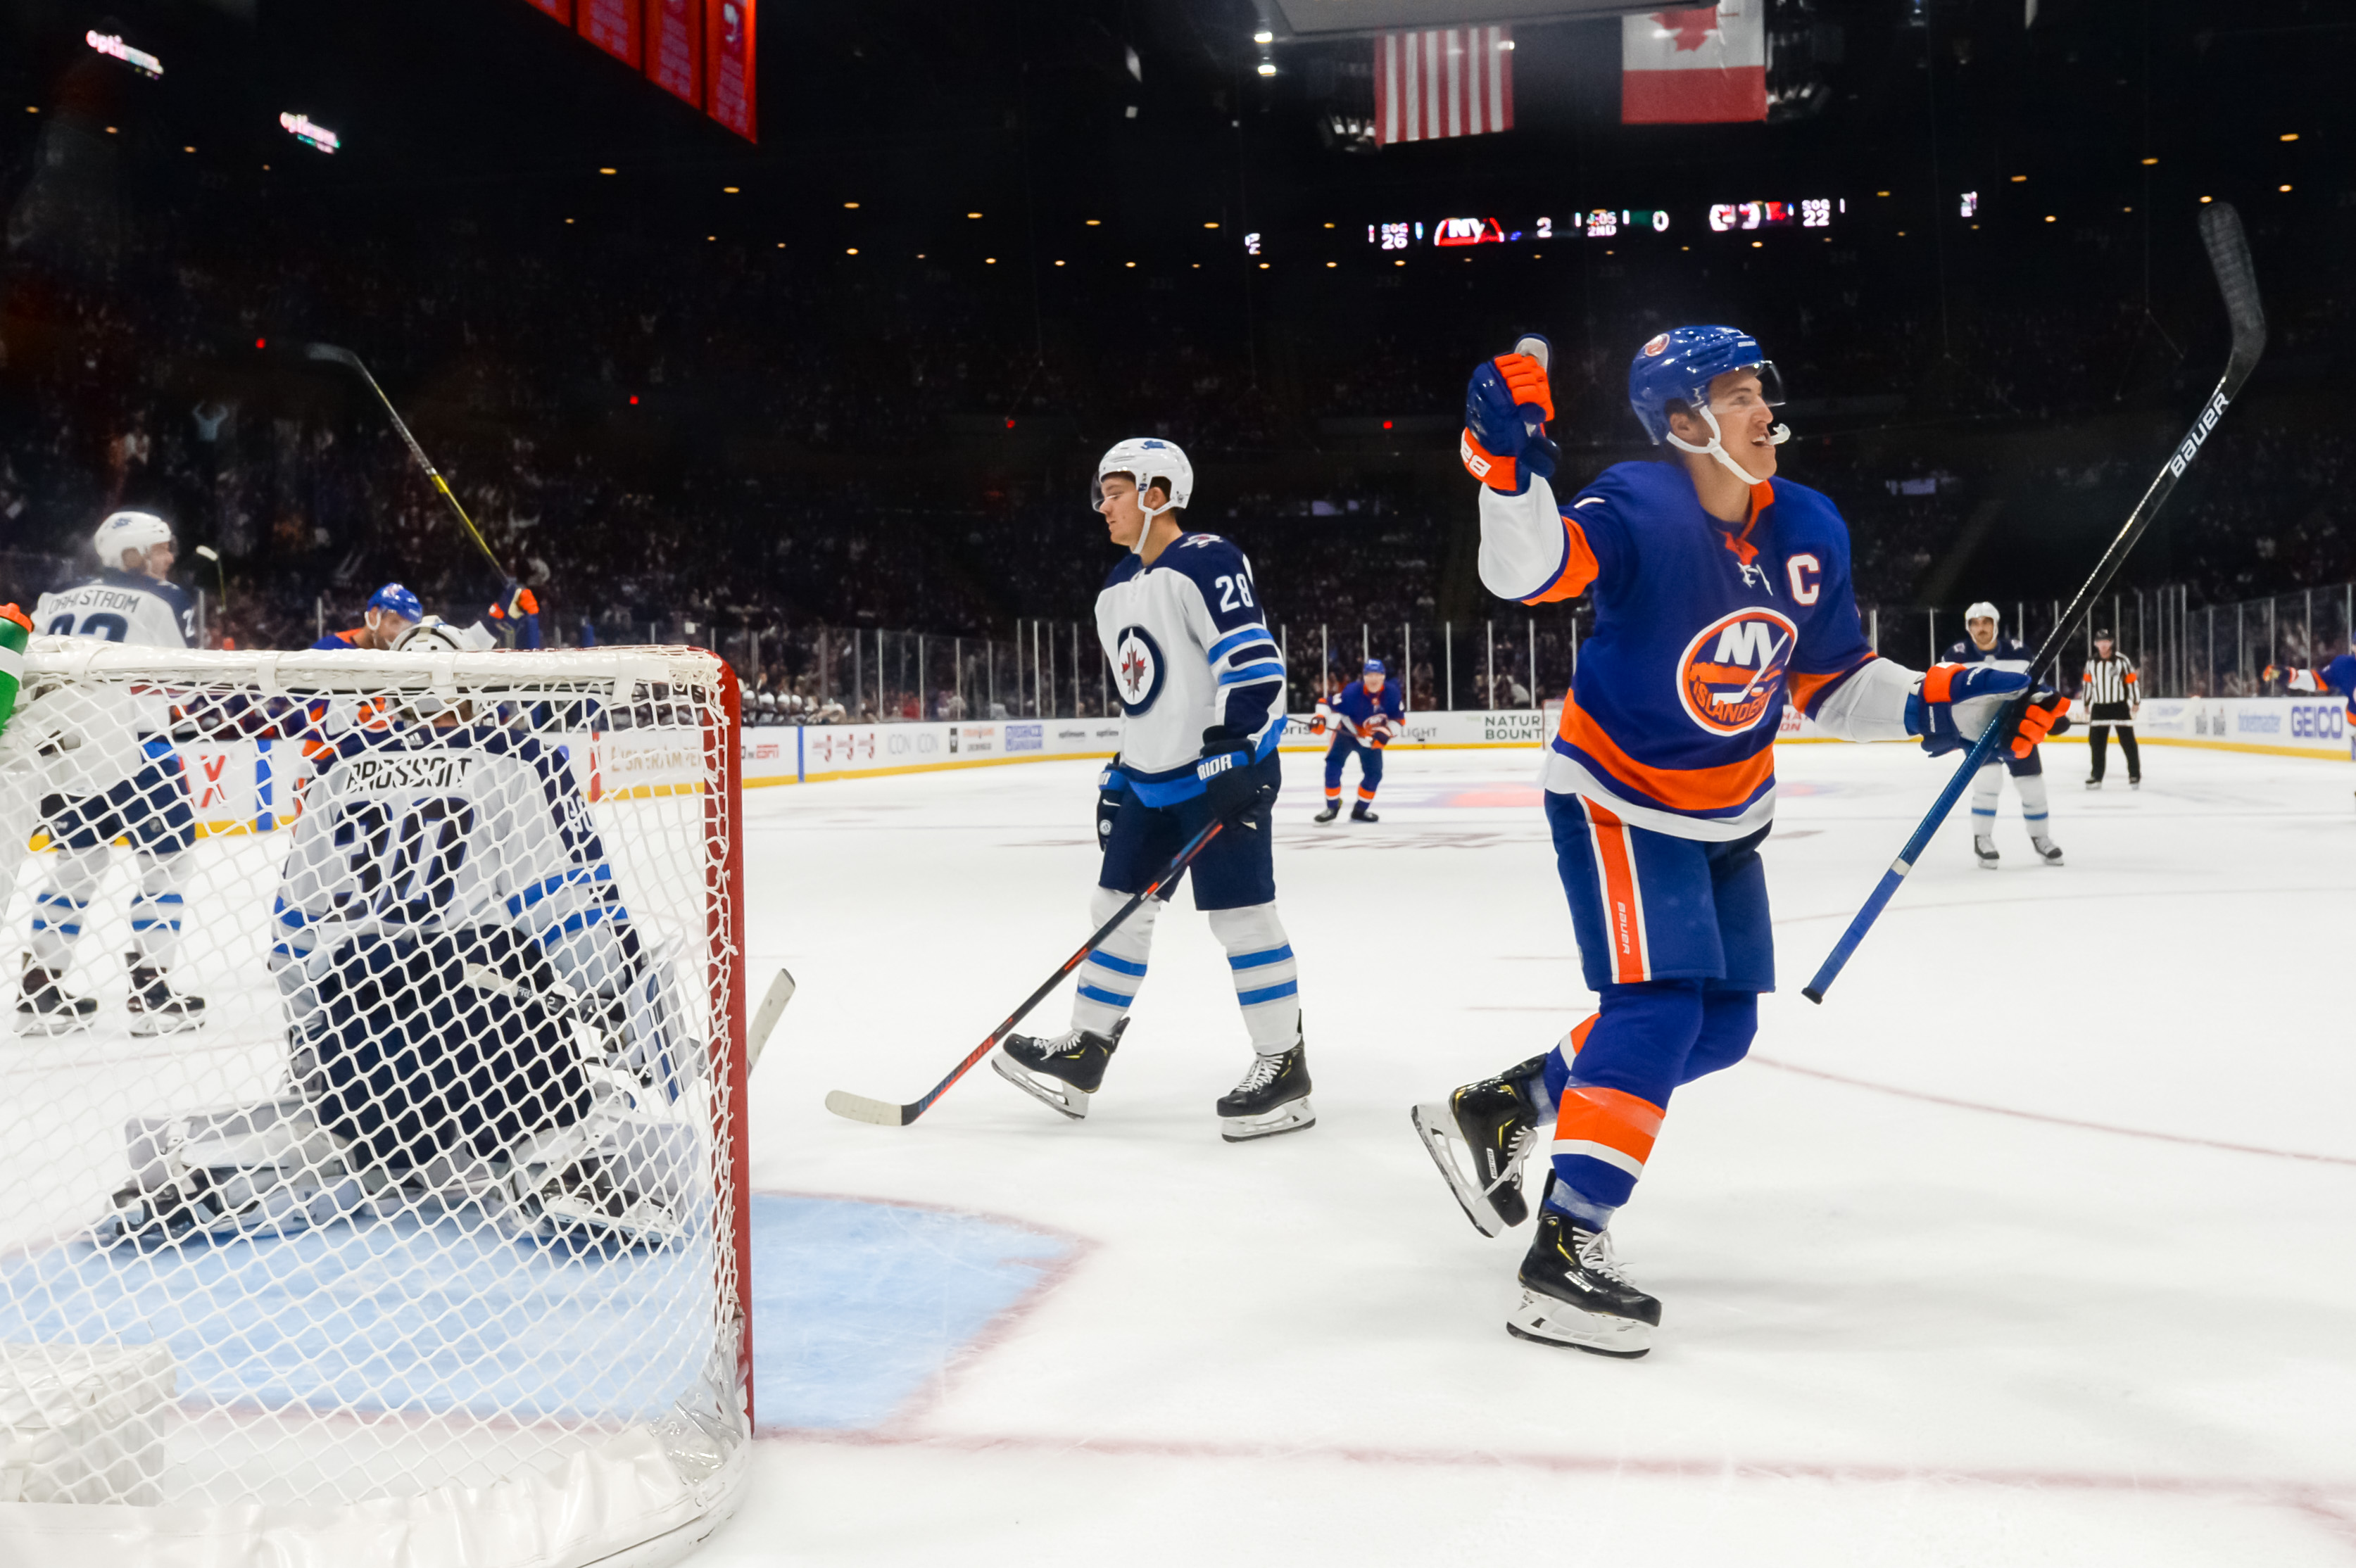 Oct 6, 2019; Brooklyn, NY, USA; New York Islanders left wing Anders Lee (27) celebrates his goal against the Winnipeg Jets during the second period at Nassau Veterans Memorial Coliseum. Mandatory Credit: Dennis Schneidler-USA TODAY Sports